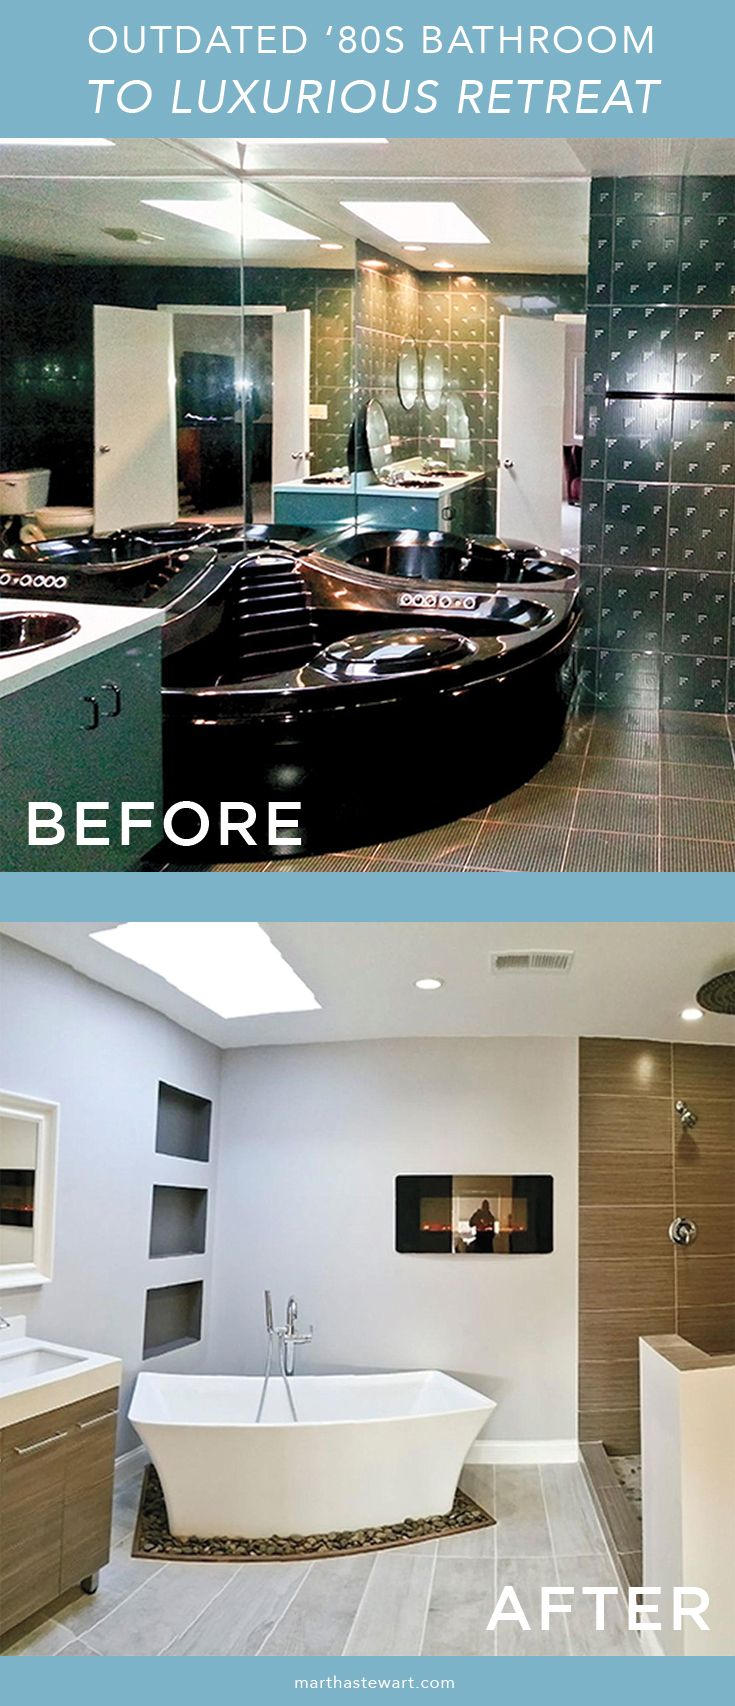 Before After See How An Outdated 80s Bathroom Becomes A Luxurious Retreat